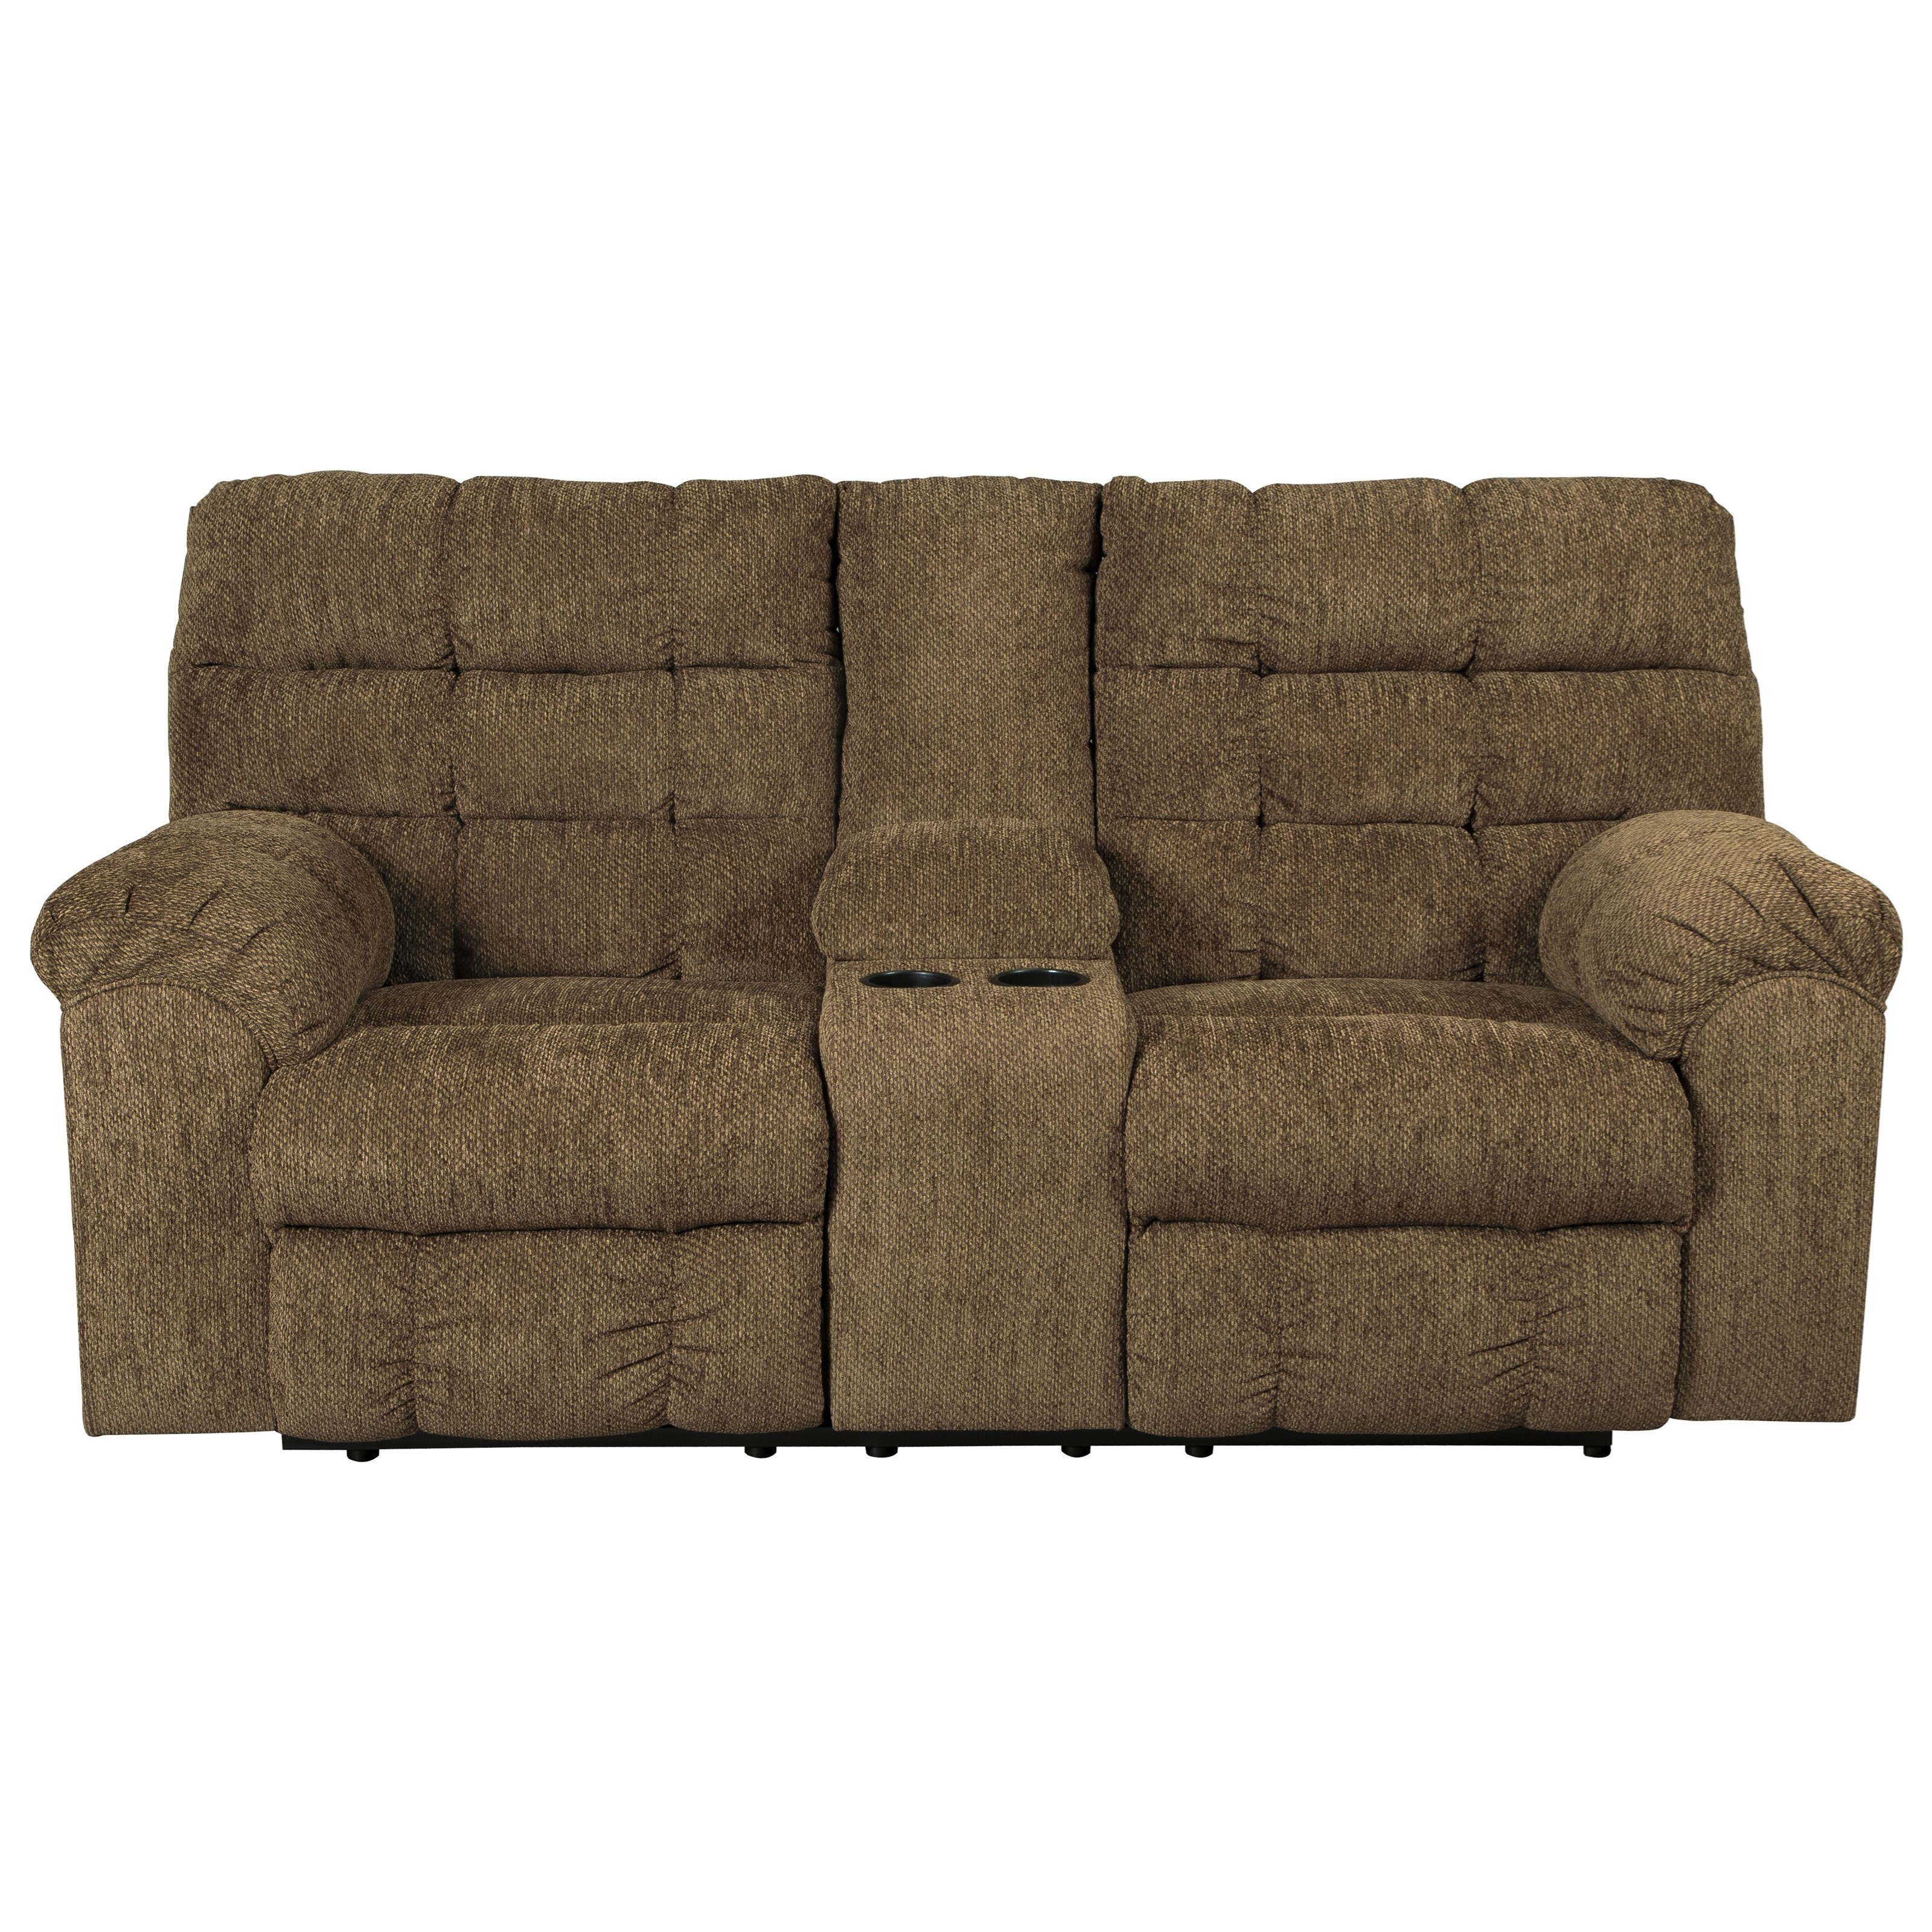 Benchcraft Antwan Reclining Loveseat w/ Console - Item Number: 4820094